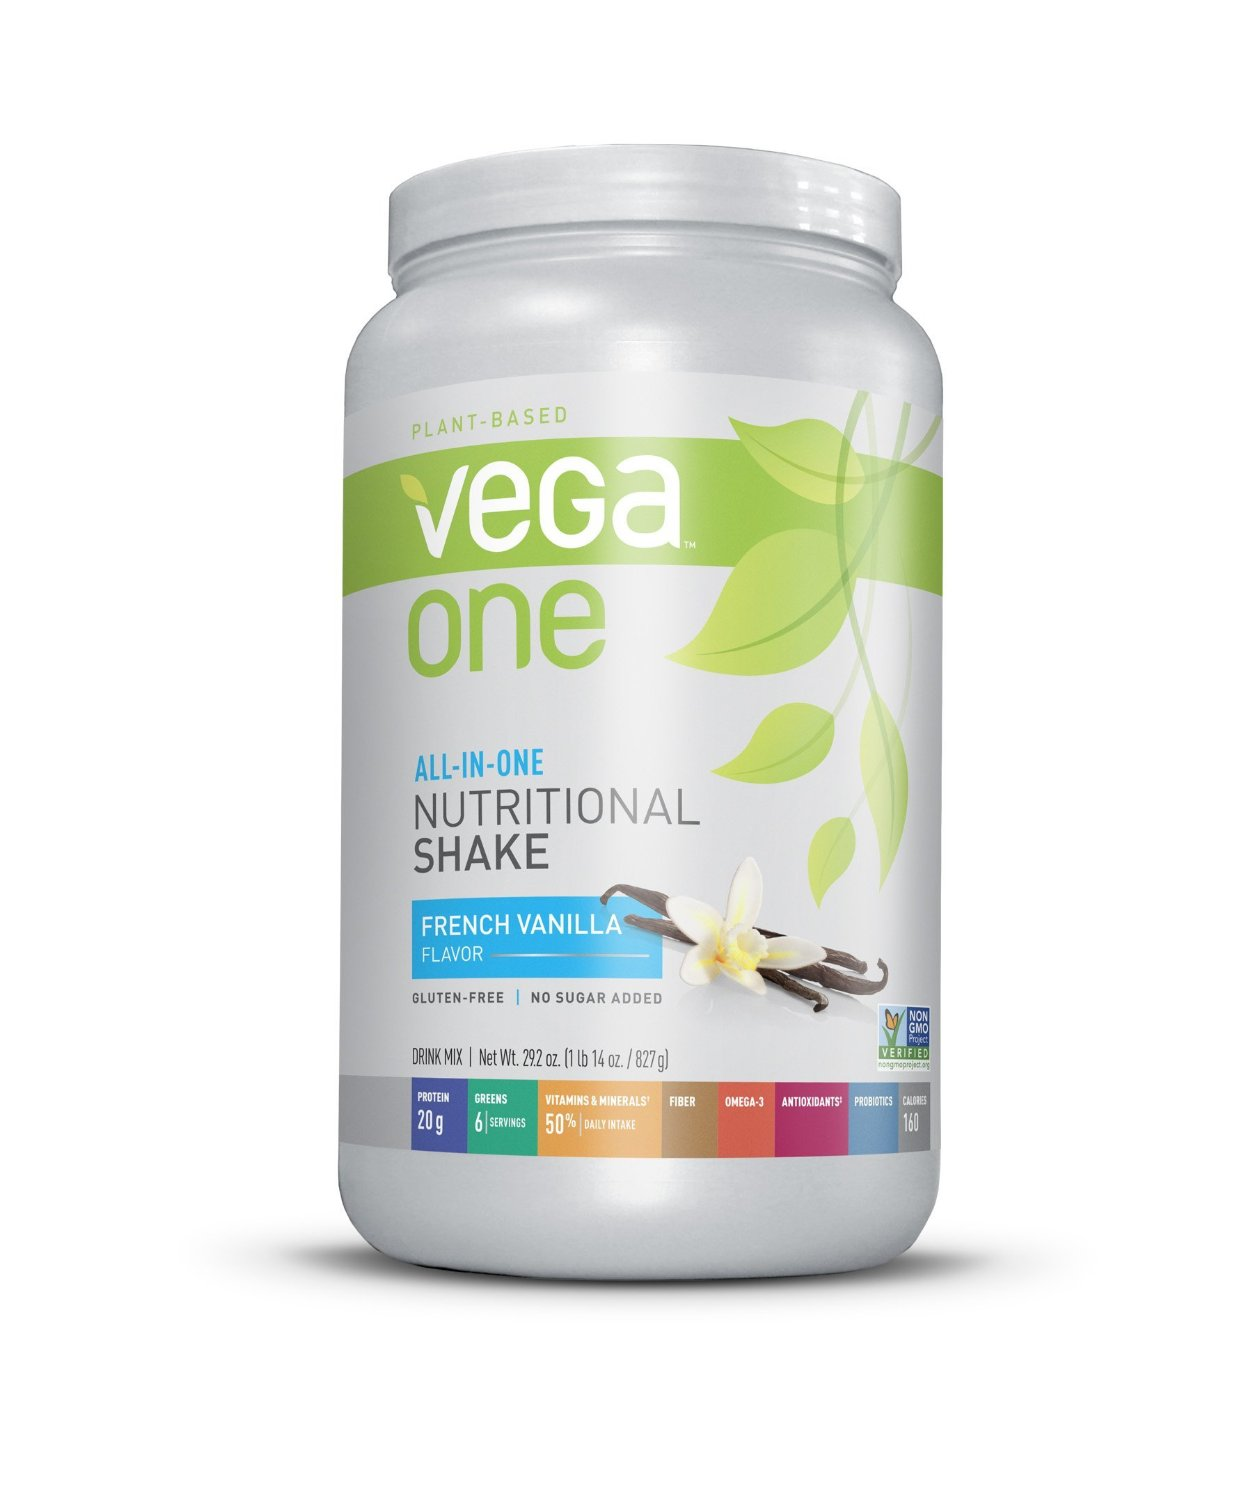 The Vega One All In Nutritional Shake Is A Product Designed For Healthy Conscious People Fitness Enthusiasts And Those On Weight Loss T